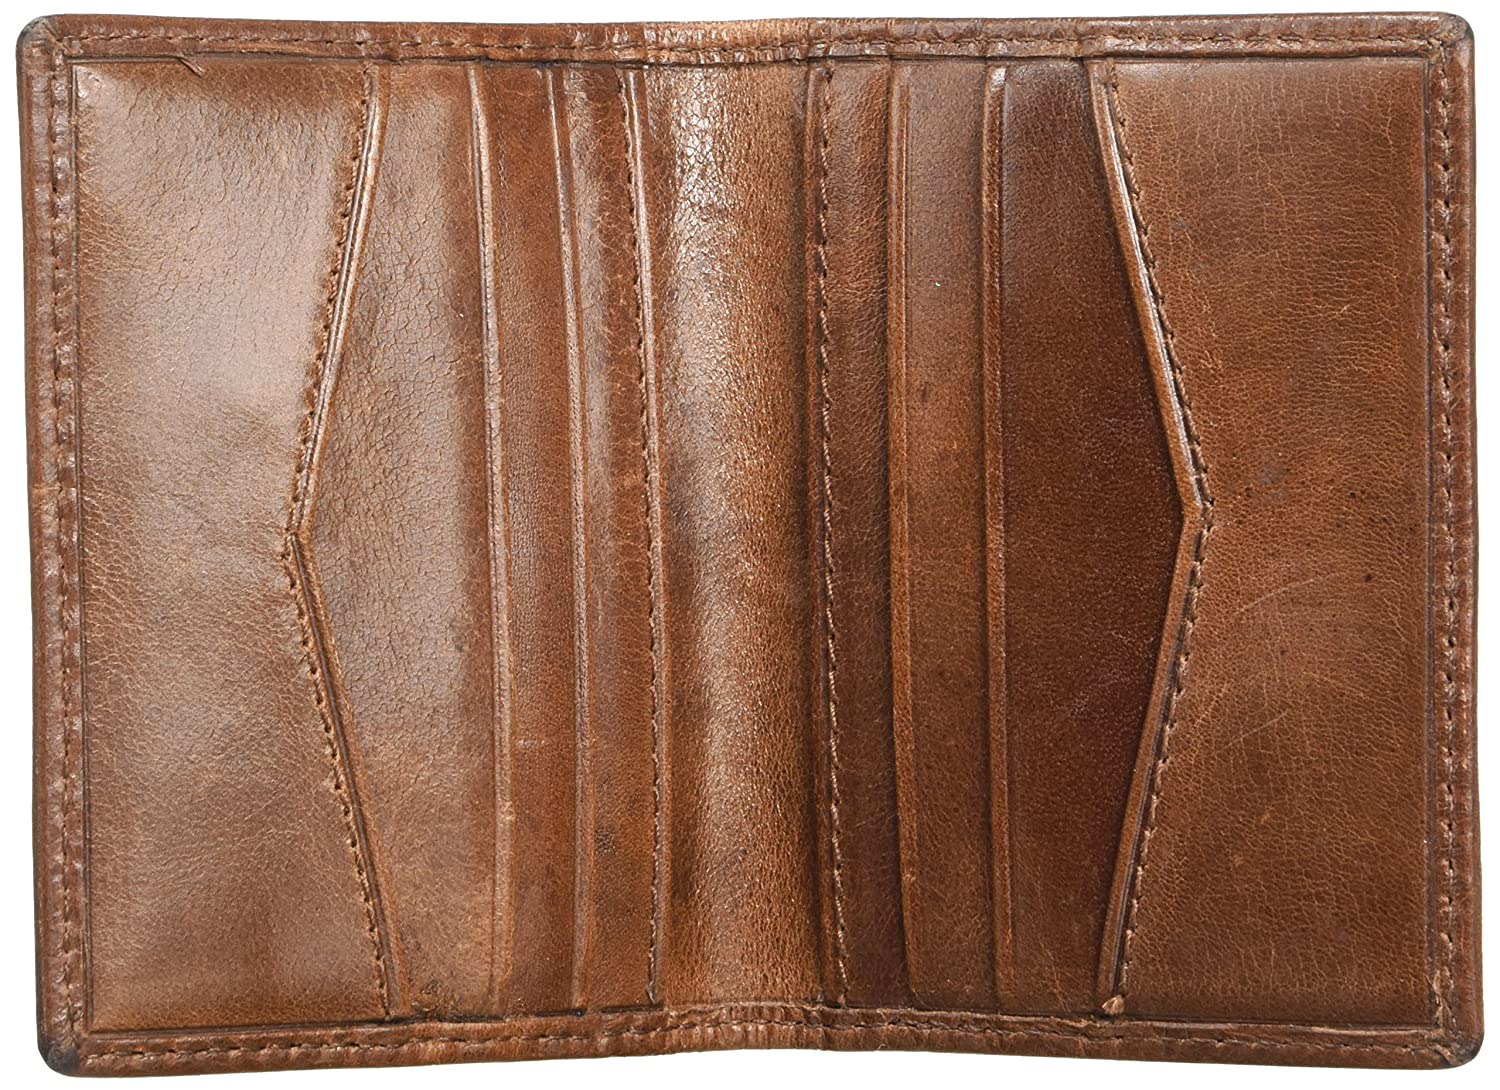 Amazon.com: Fossil Ryan, Cartera para Hombre, Braun (Marrón ...